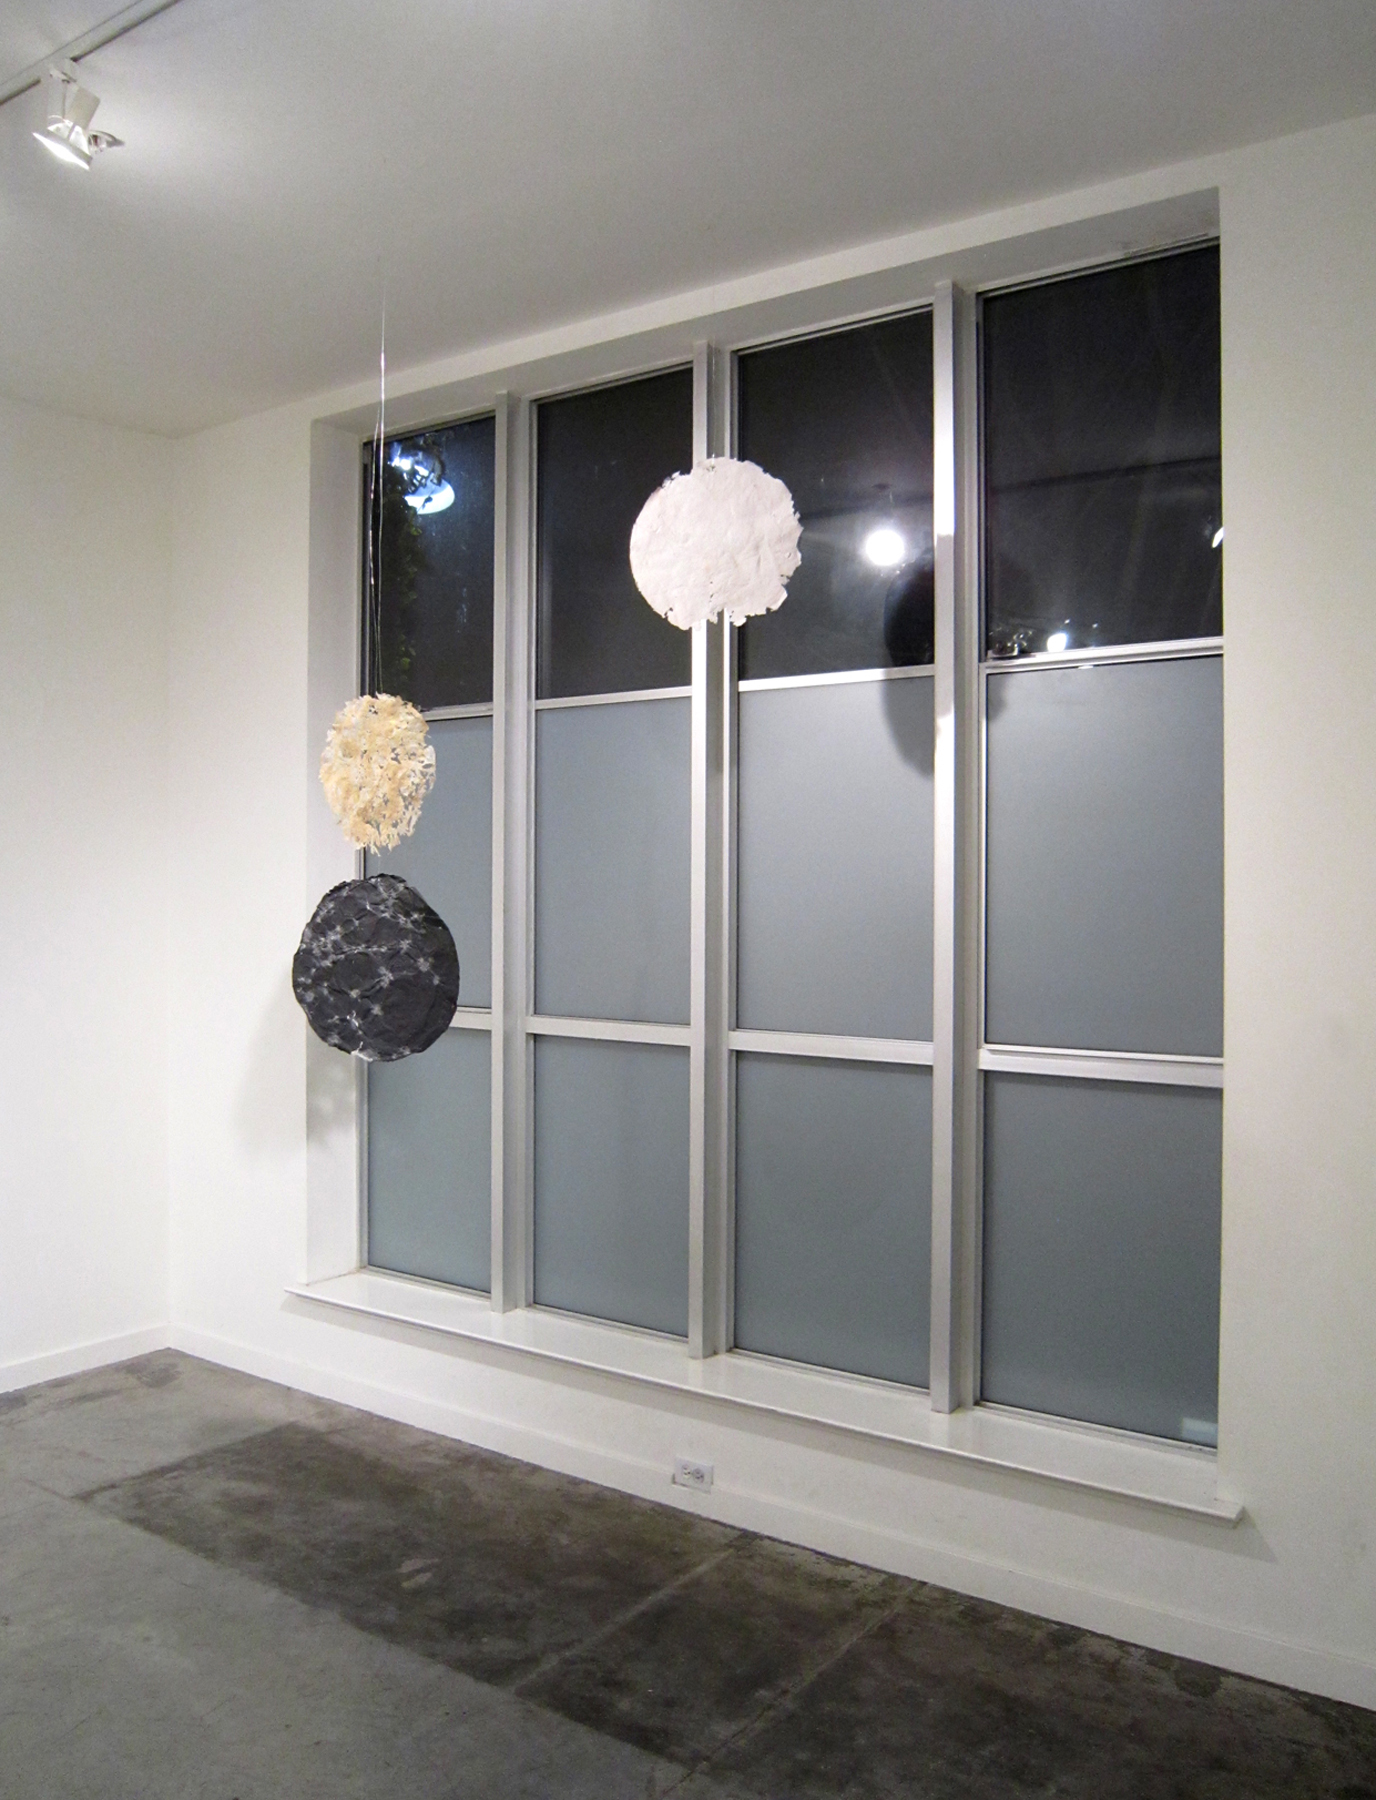 MOLLY SMITH   Route , installation